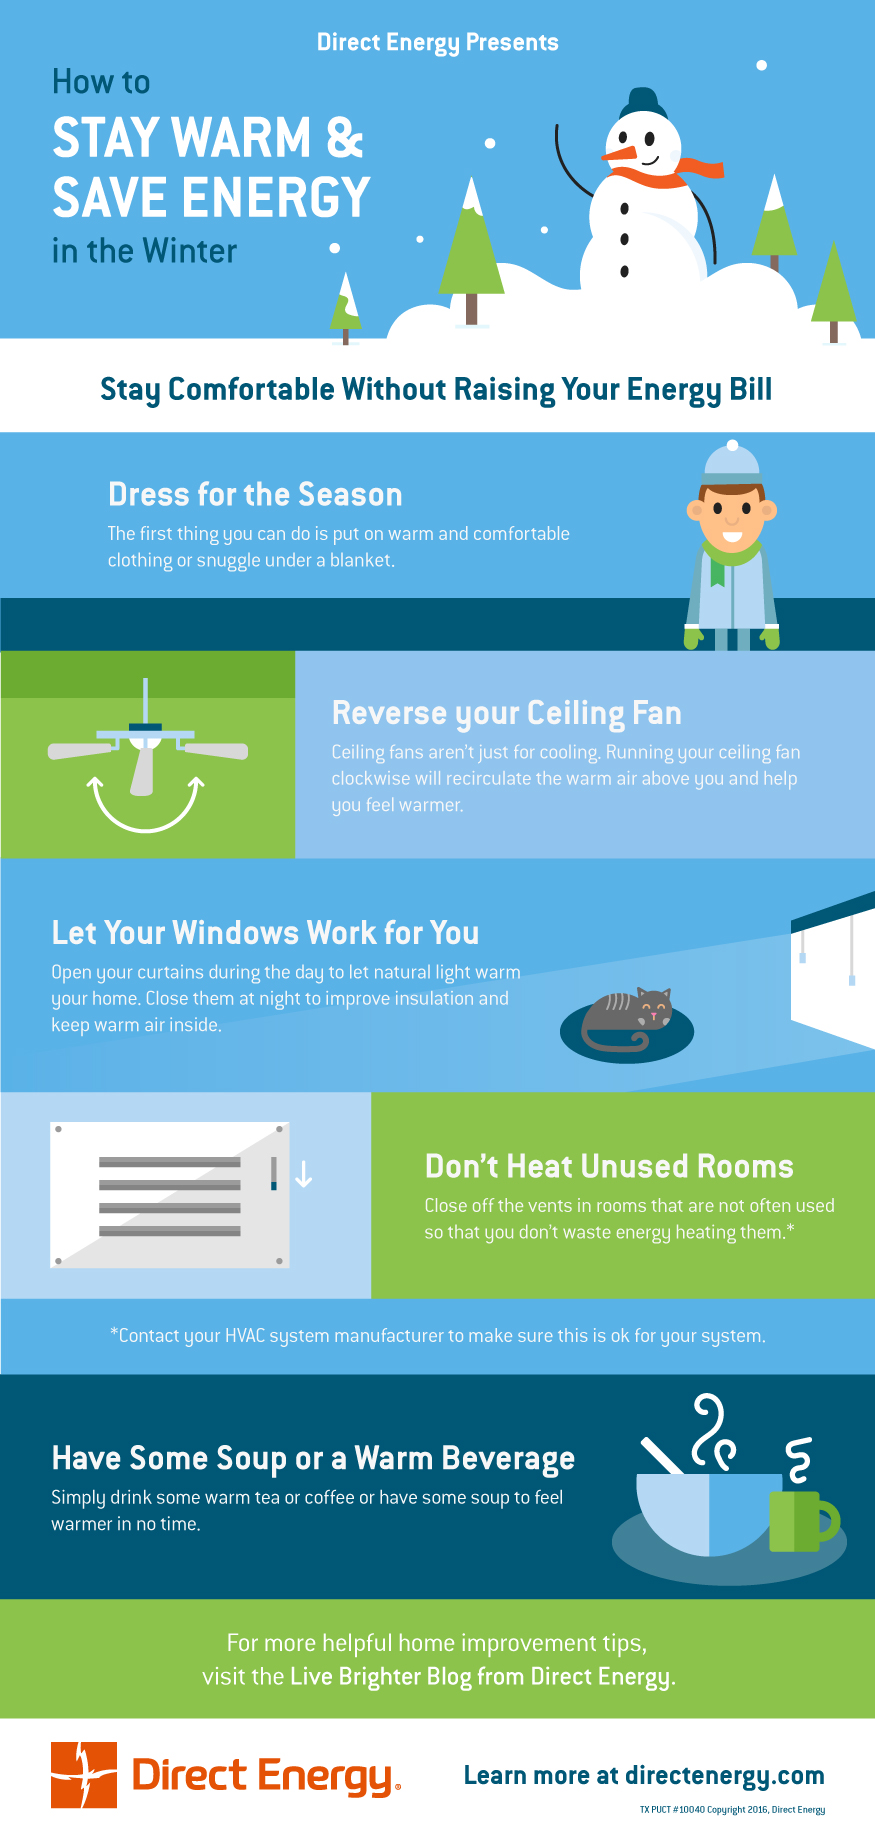 How to Save Energy in the Winter